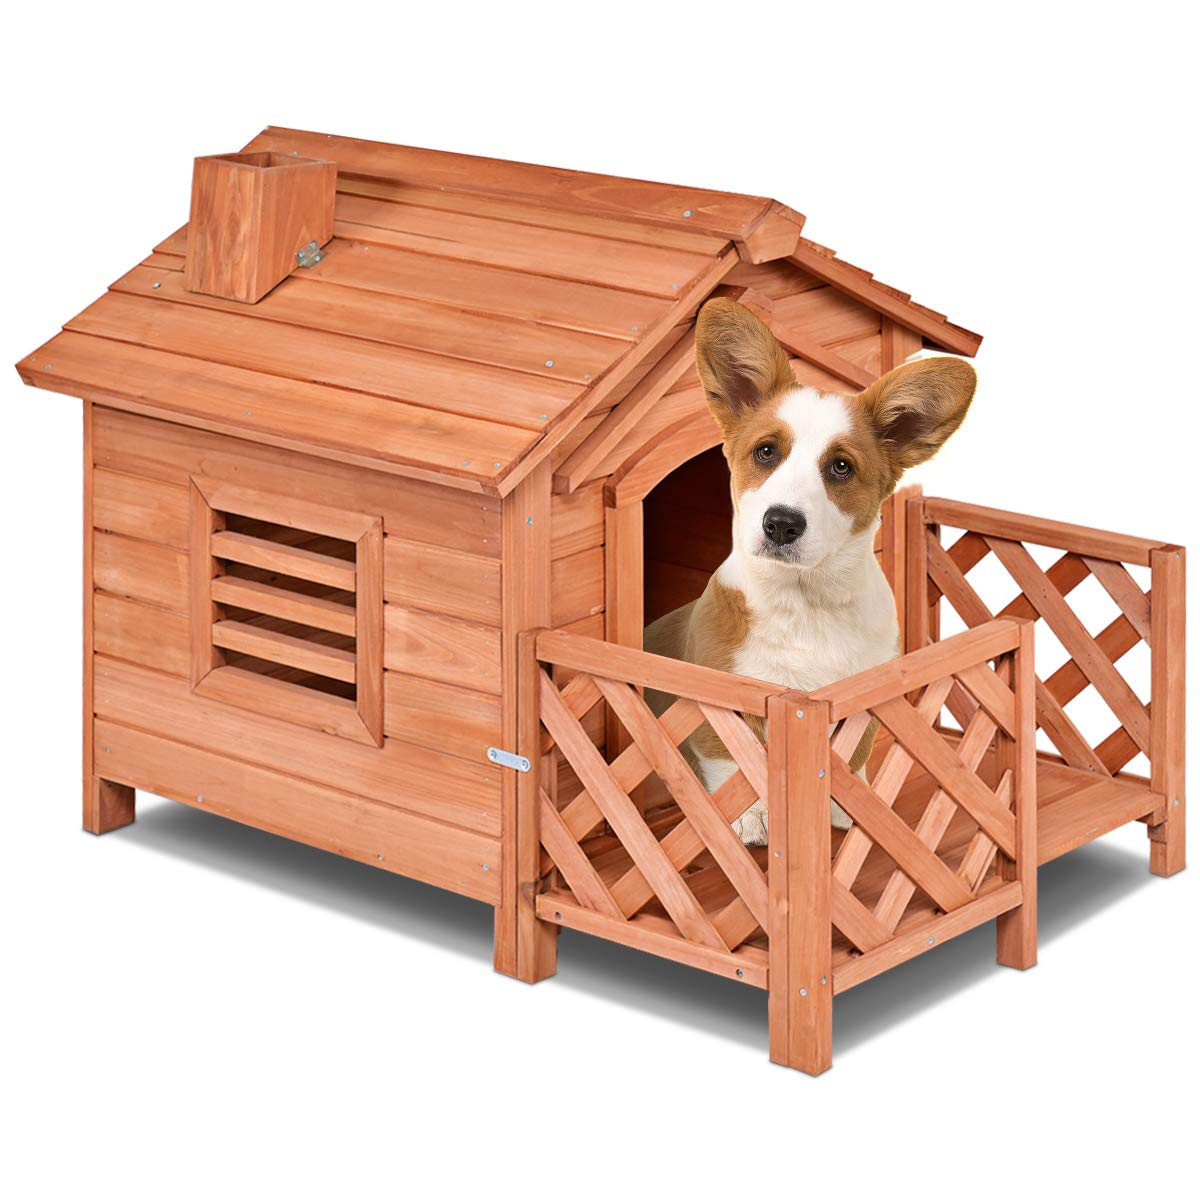 PETSJOY Pet Cat Dog House, Wooden Dog Cat Room Shelter with Porch & Fence, Raised Vent and Balcony for Outdoor & Indoor Use, Feral Insulated Pet House for Small Dogs, Weatherproof Dog Kennel